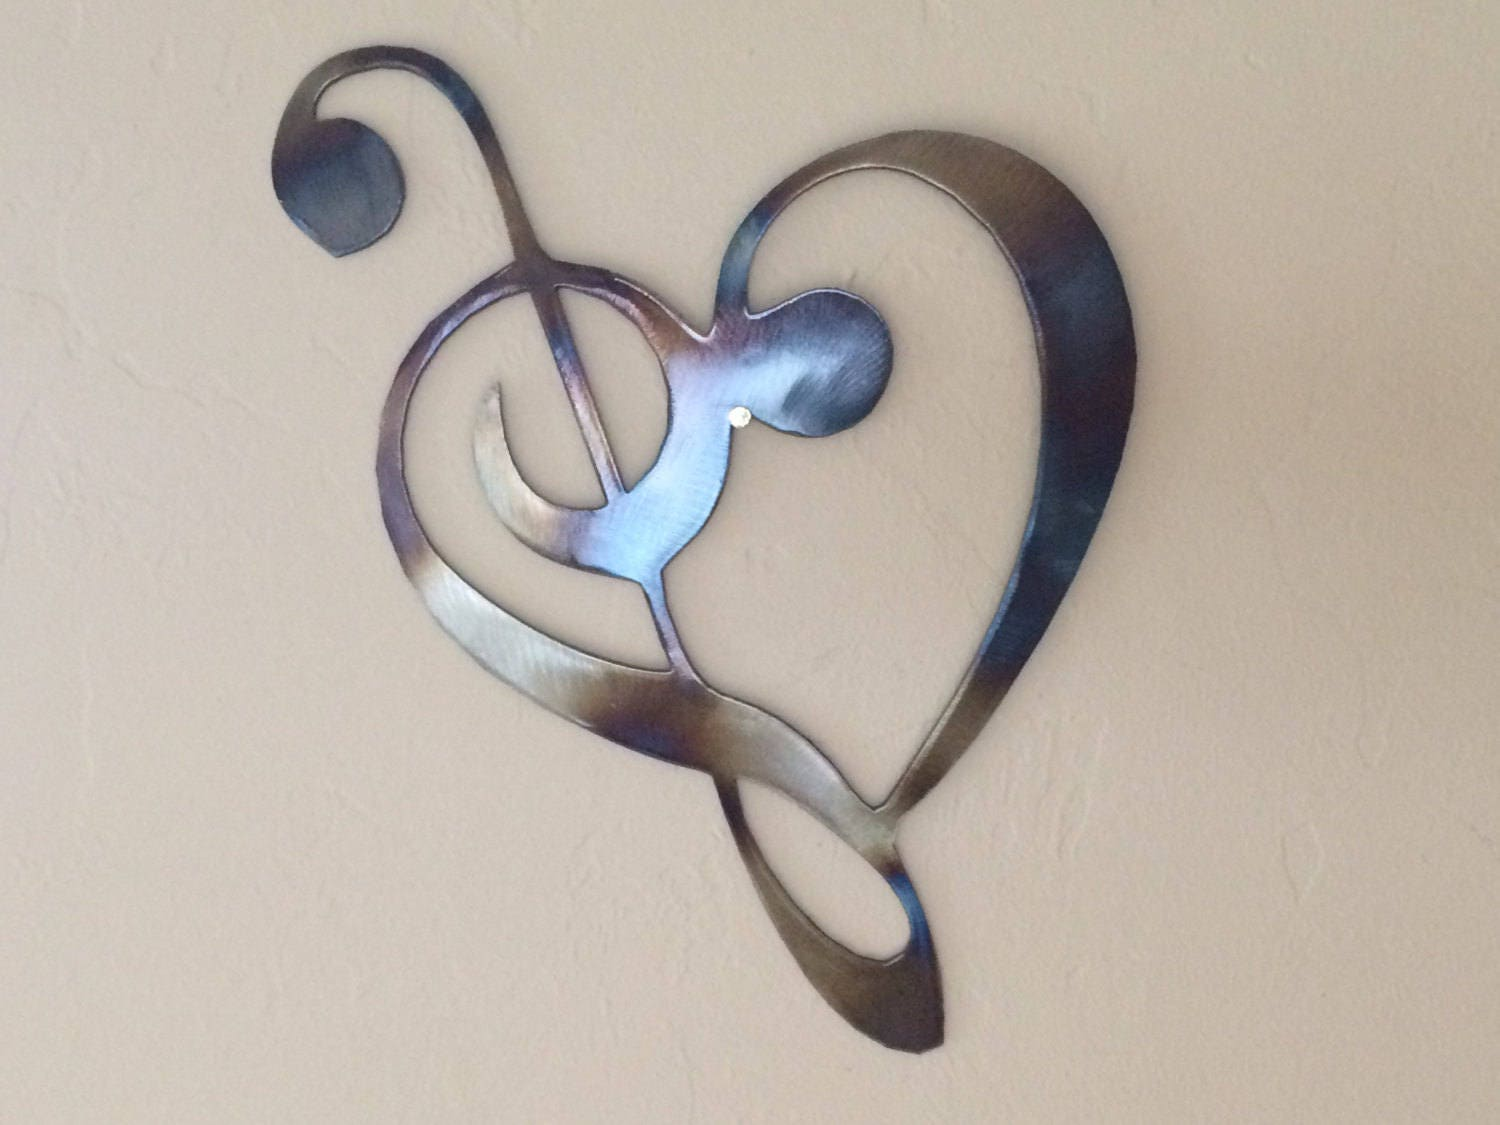 Metal Wall Decor With Musical Notes : Heart music notes metal wall art decor